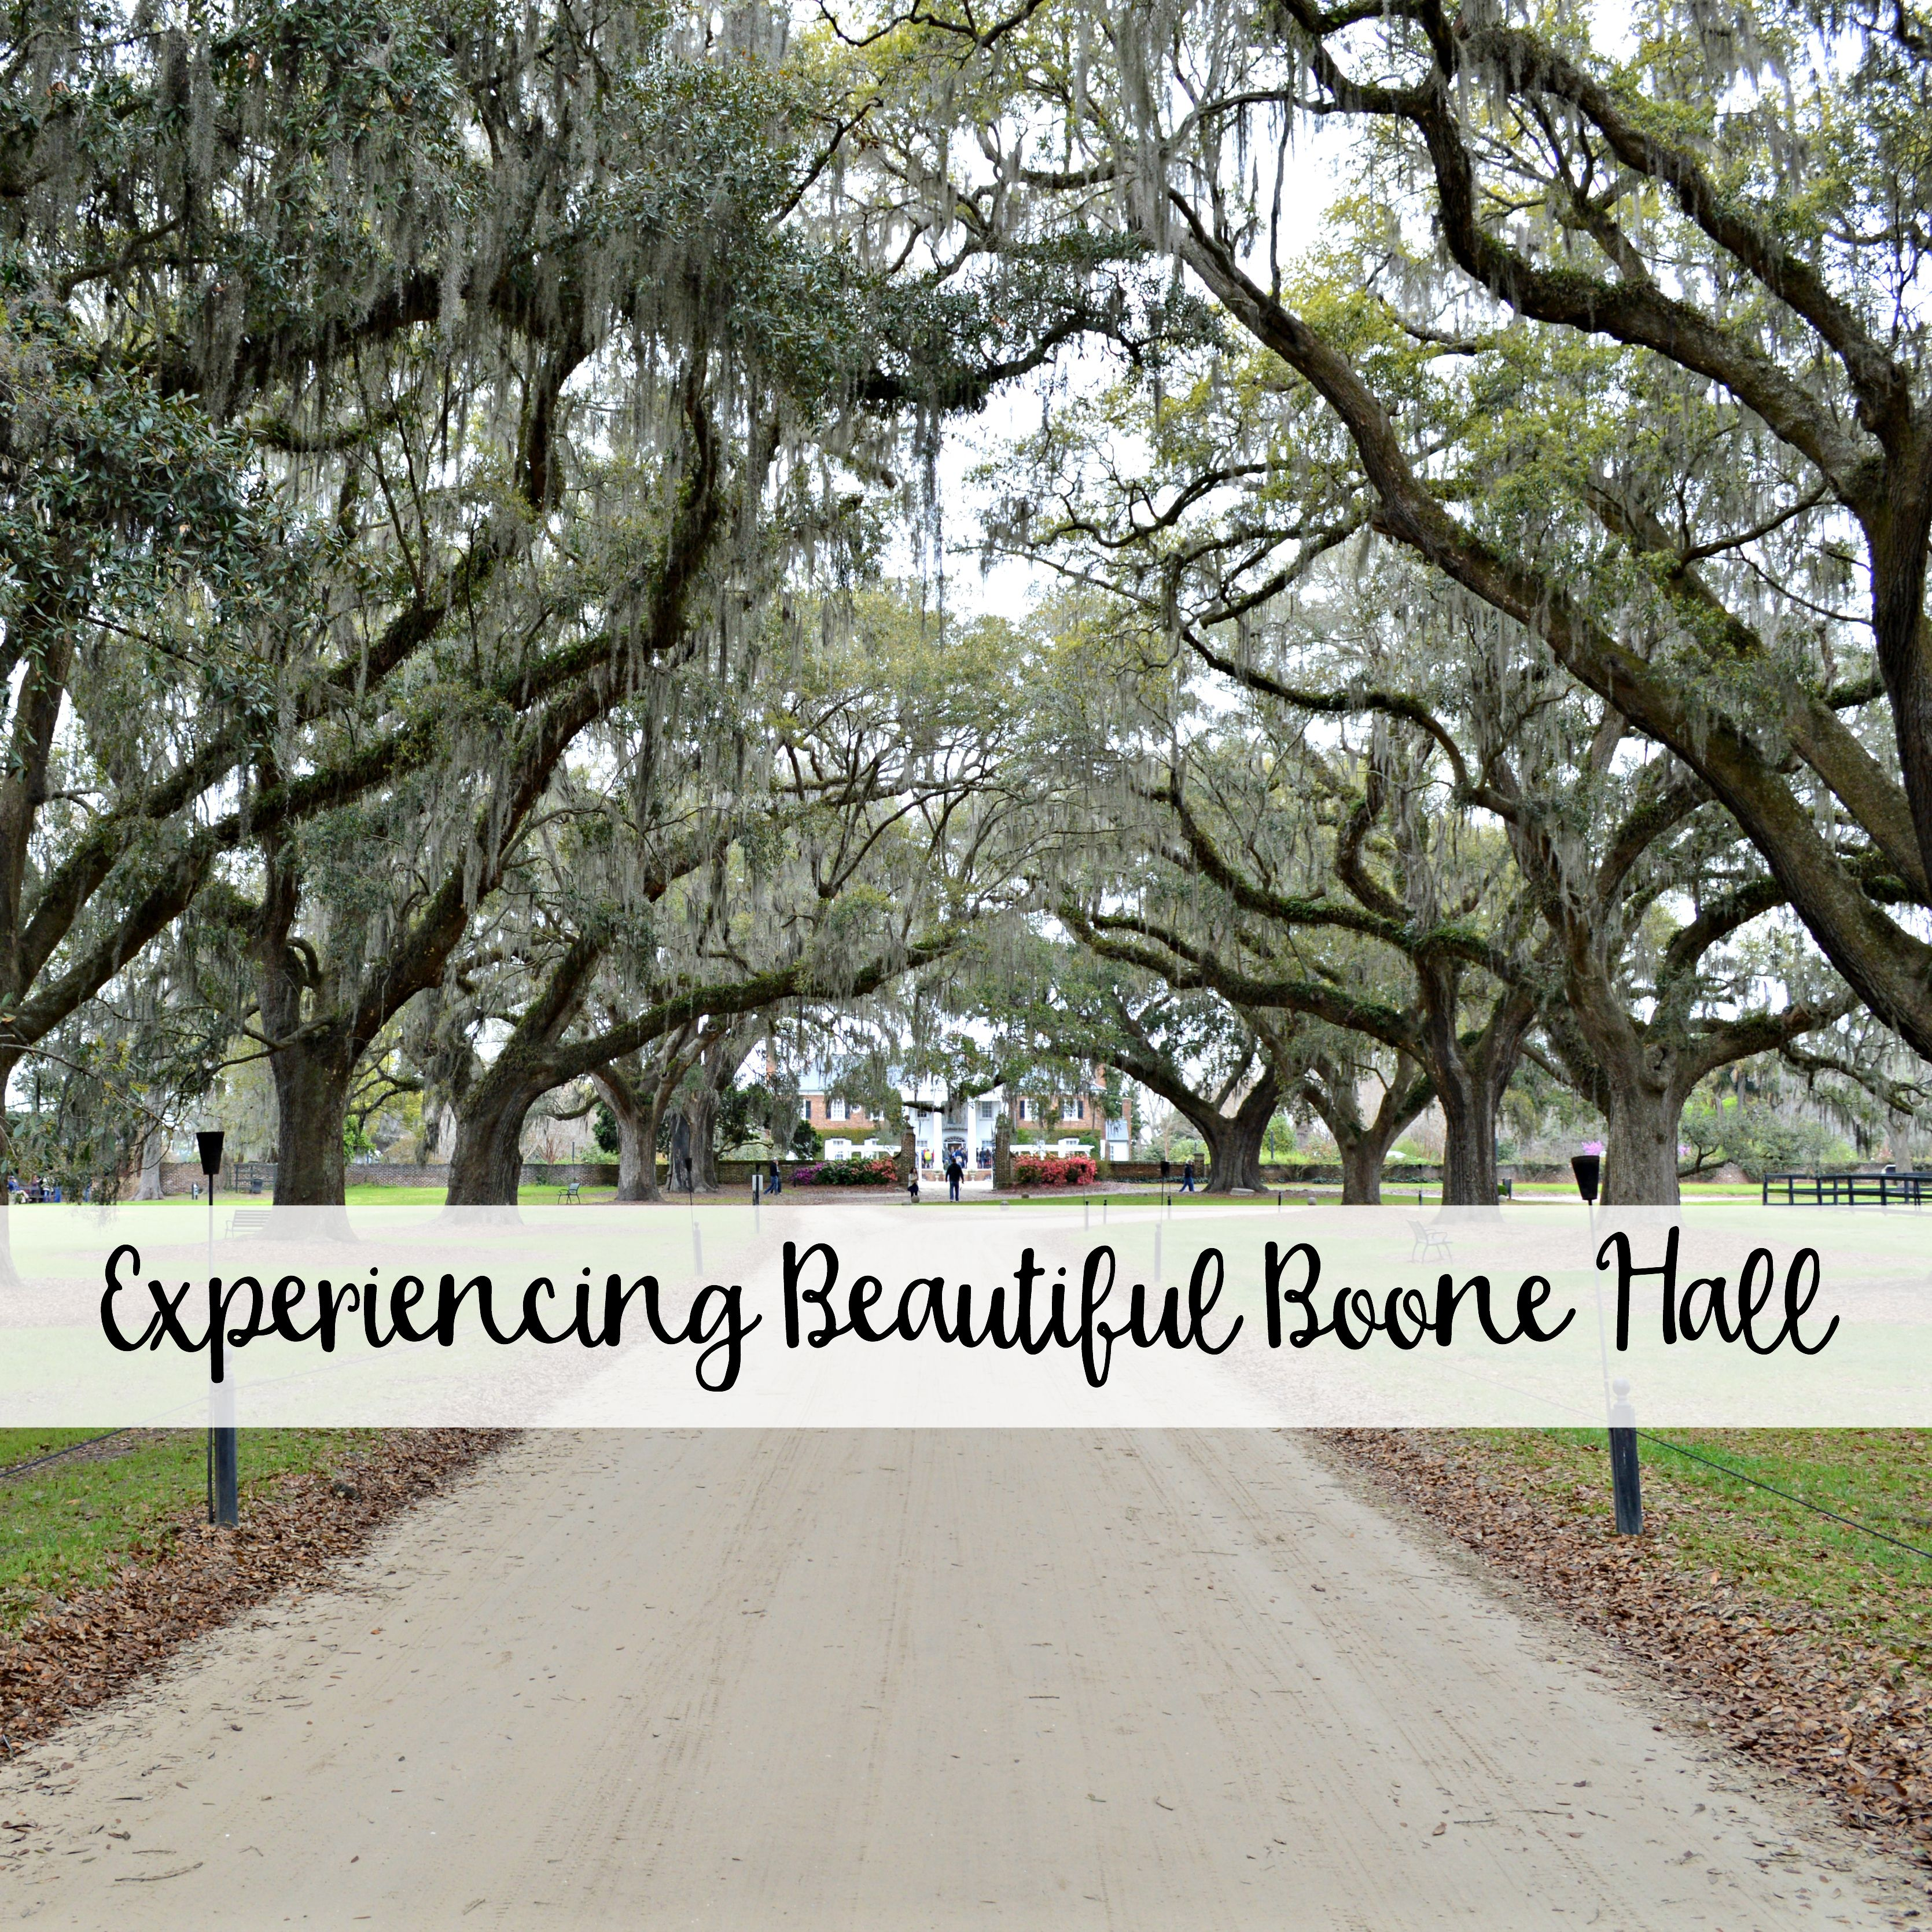 Experiencing Beautiful Boone Hall Boone hall, Boone hall